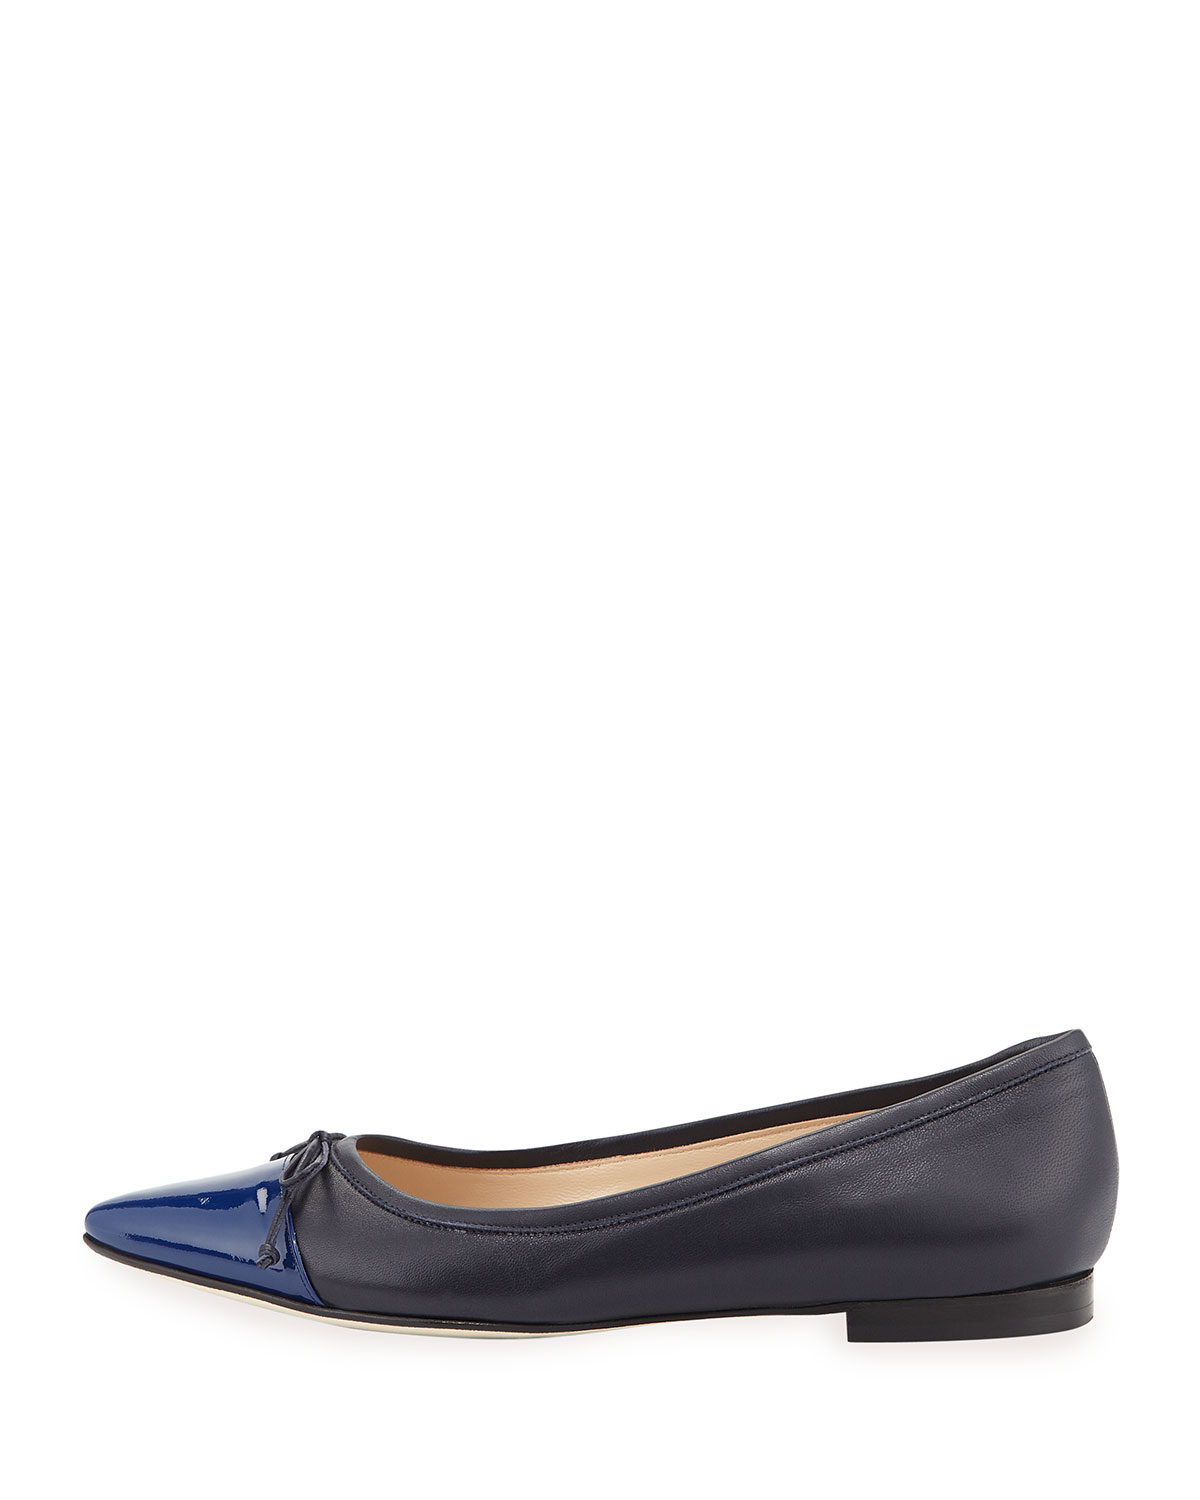 cheap with credit card Manolo Blahnik Metallic Cap-Toe Flats buy cheap store low price cheap online CY3SWNe